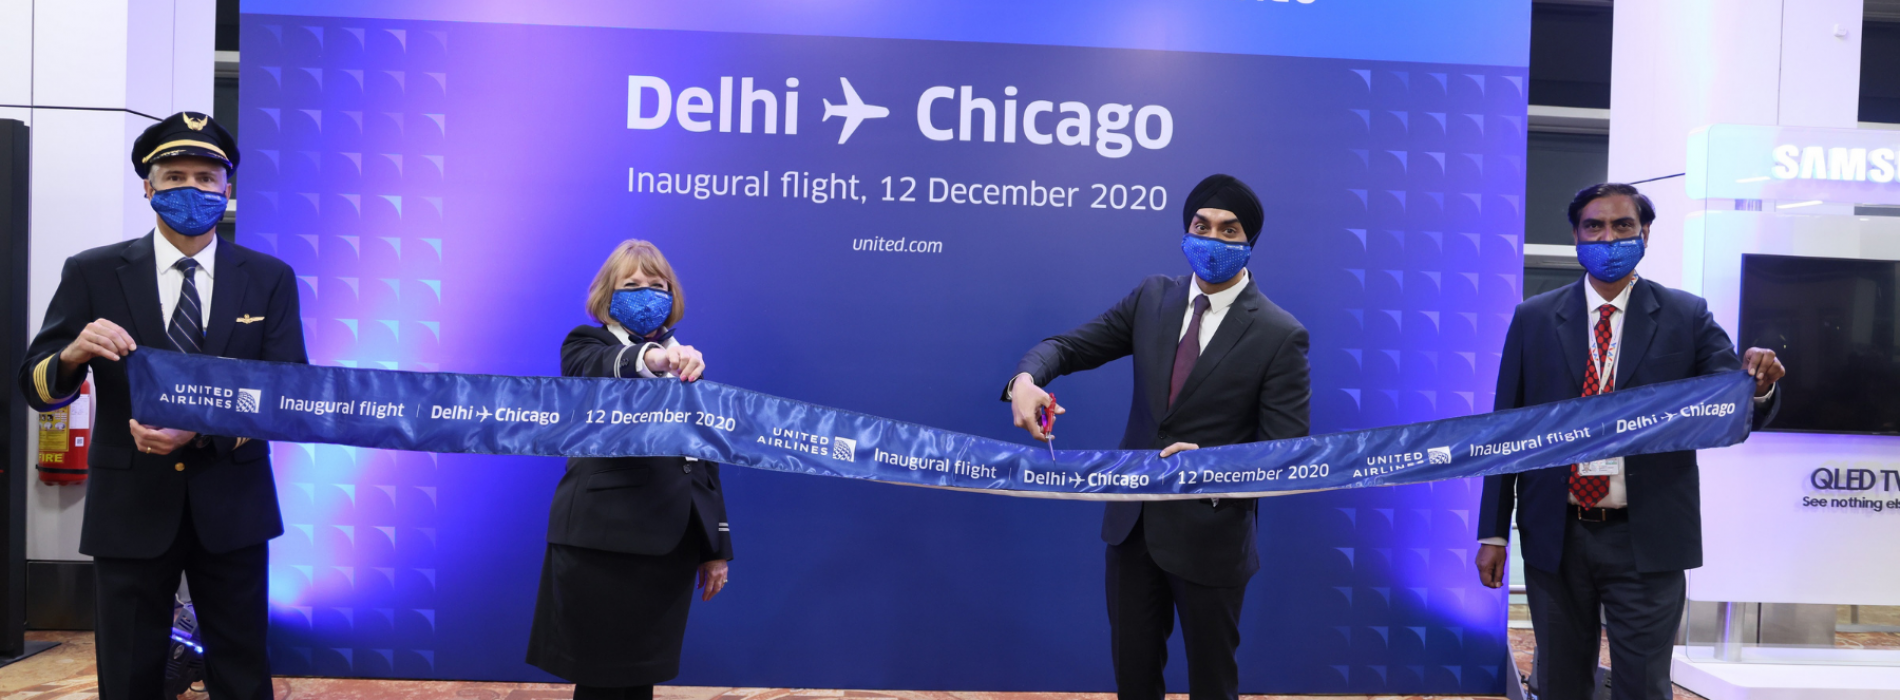 United Airlines Inaugurates Nonstop Service BetweenNew Delhi and Chicago